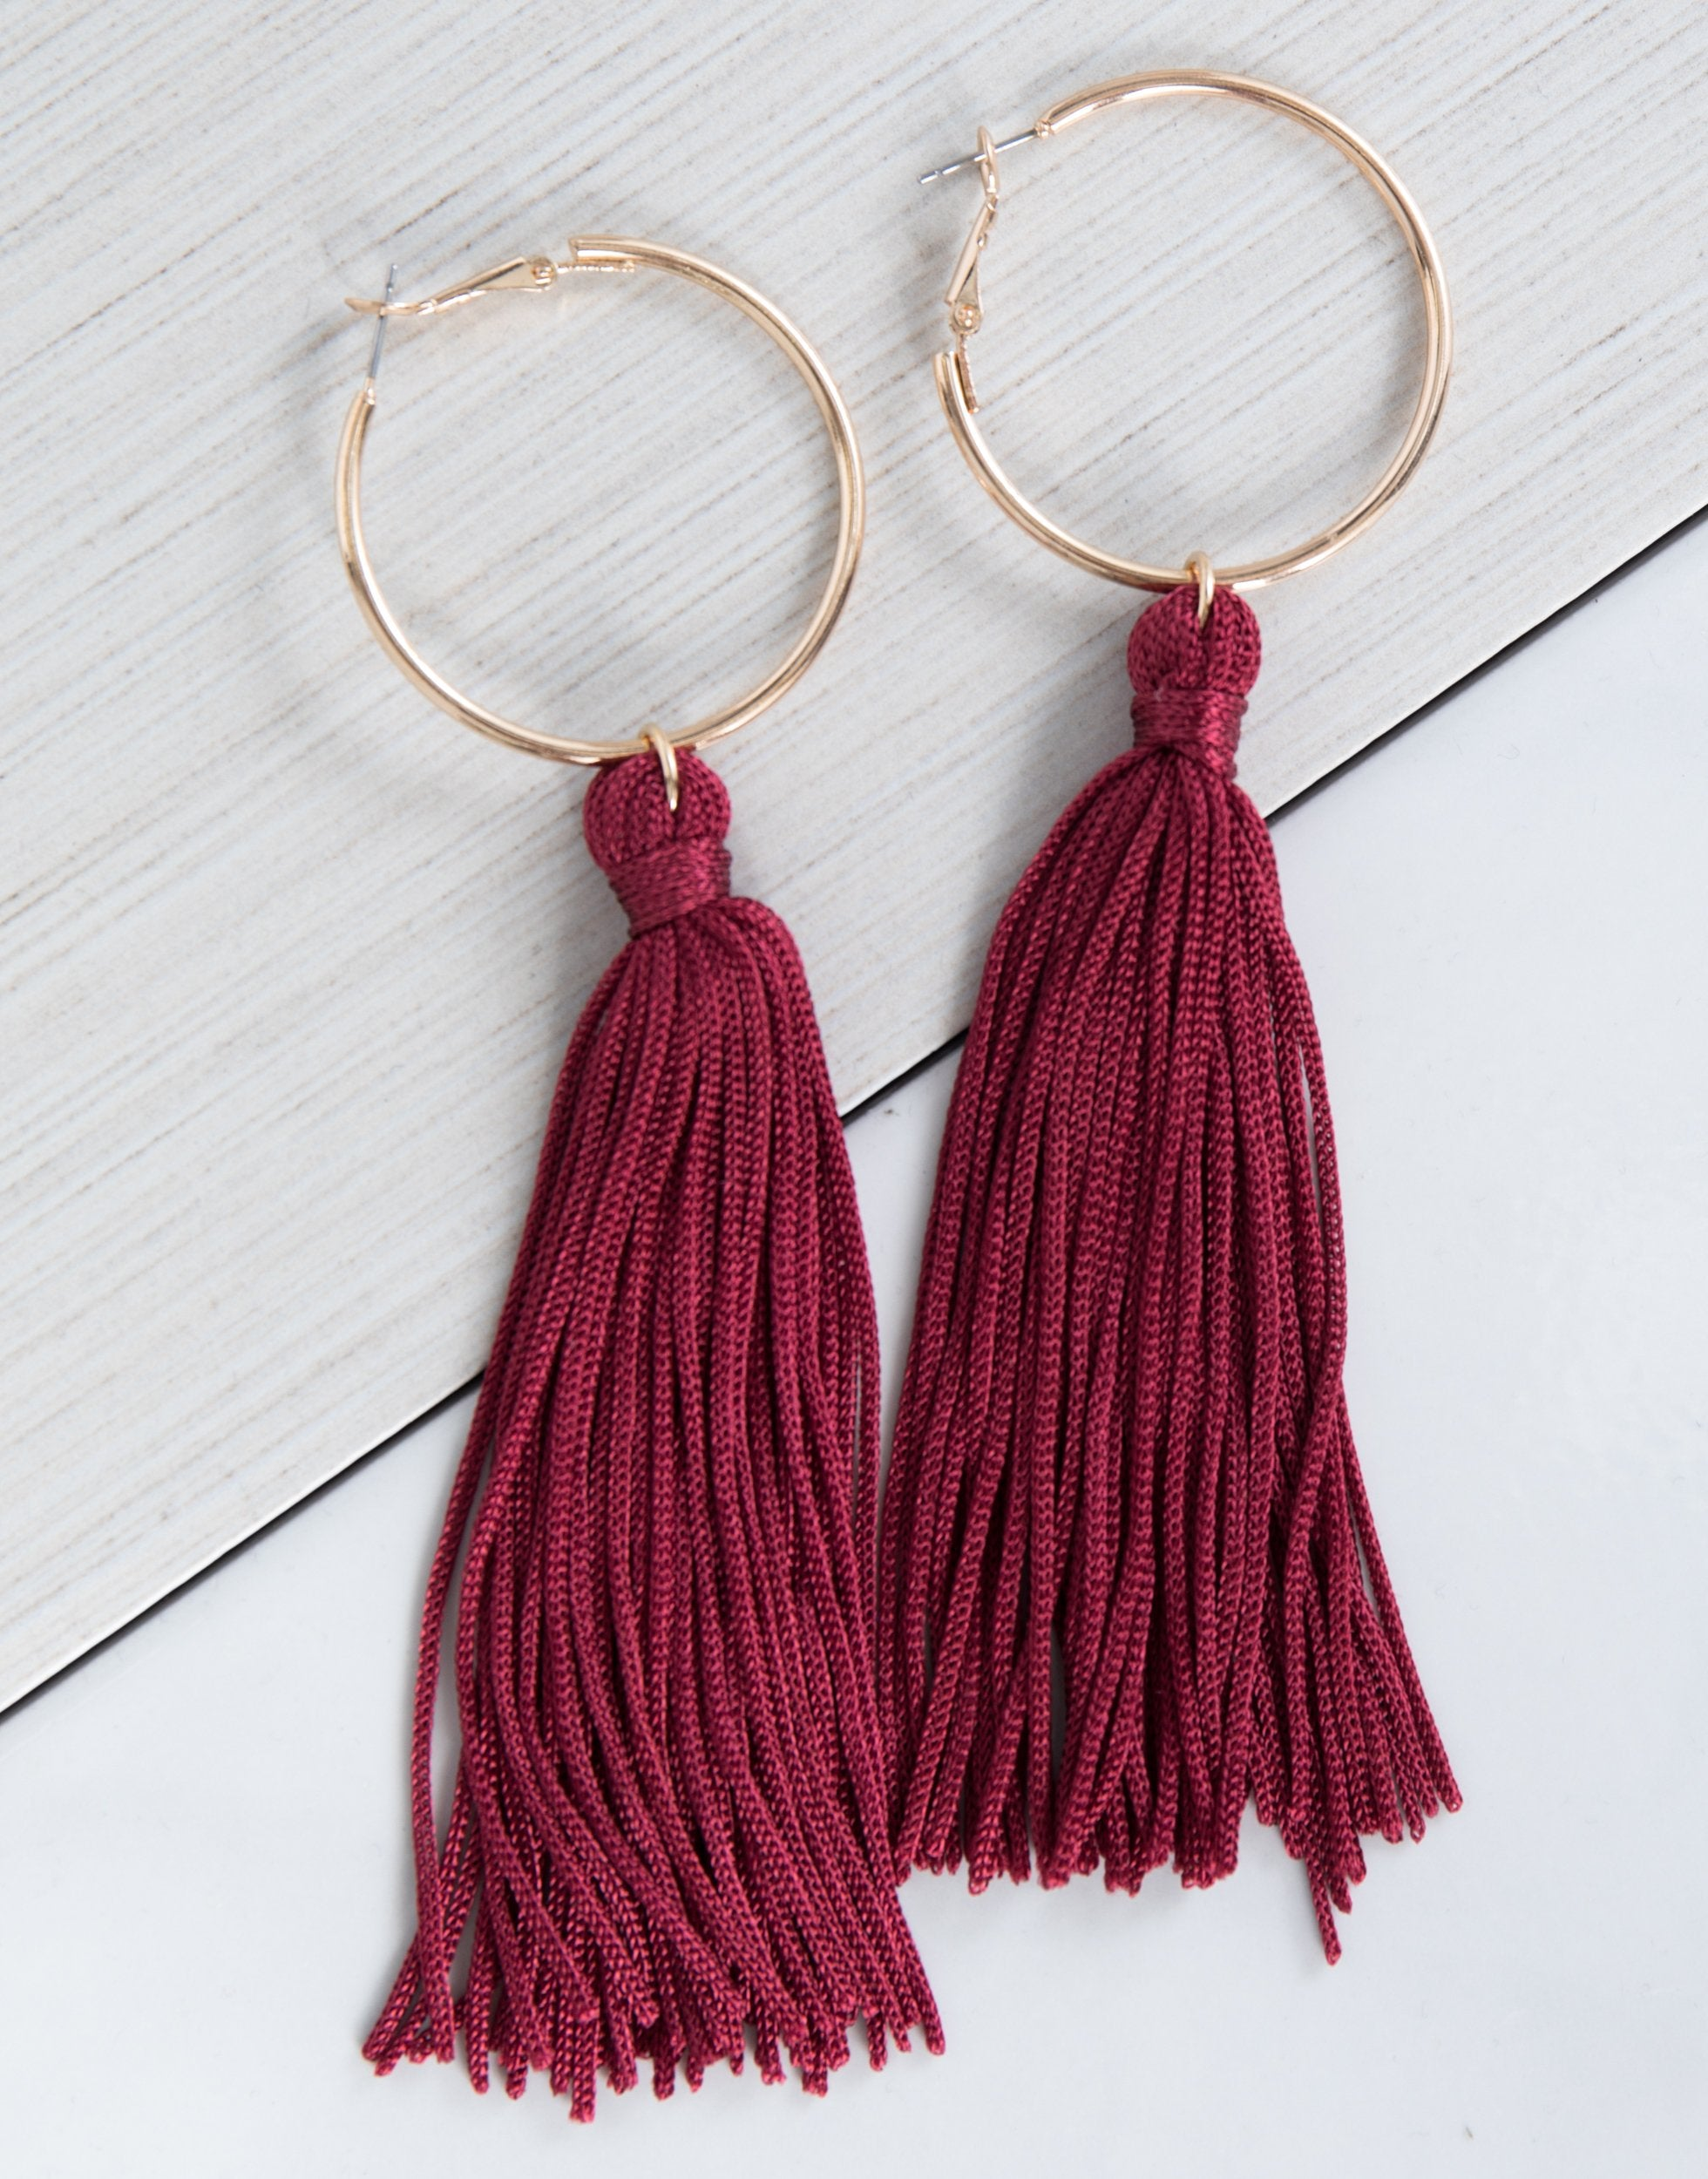 shoppingis pin com saved astrid the tassle by knotted earrings ivory shopbop vanessa mooney tassel